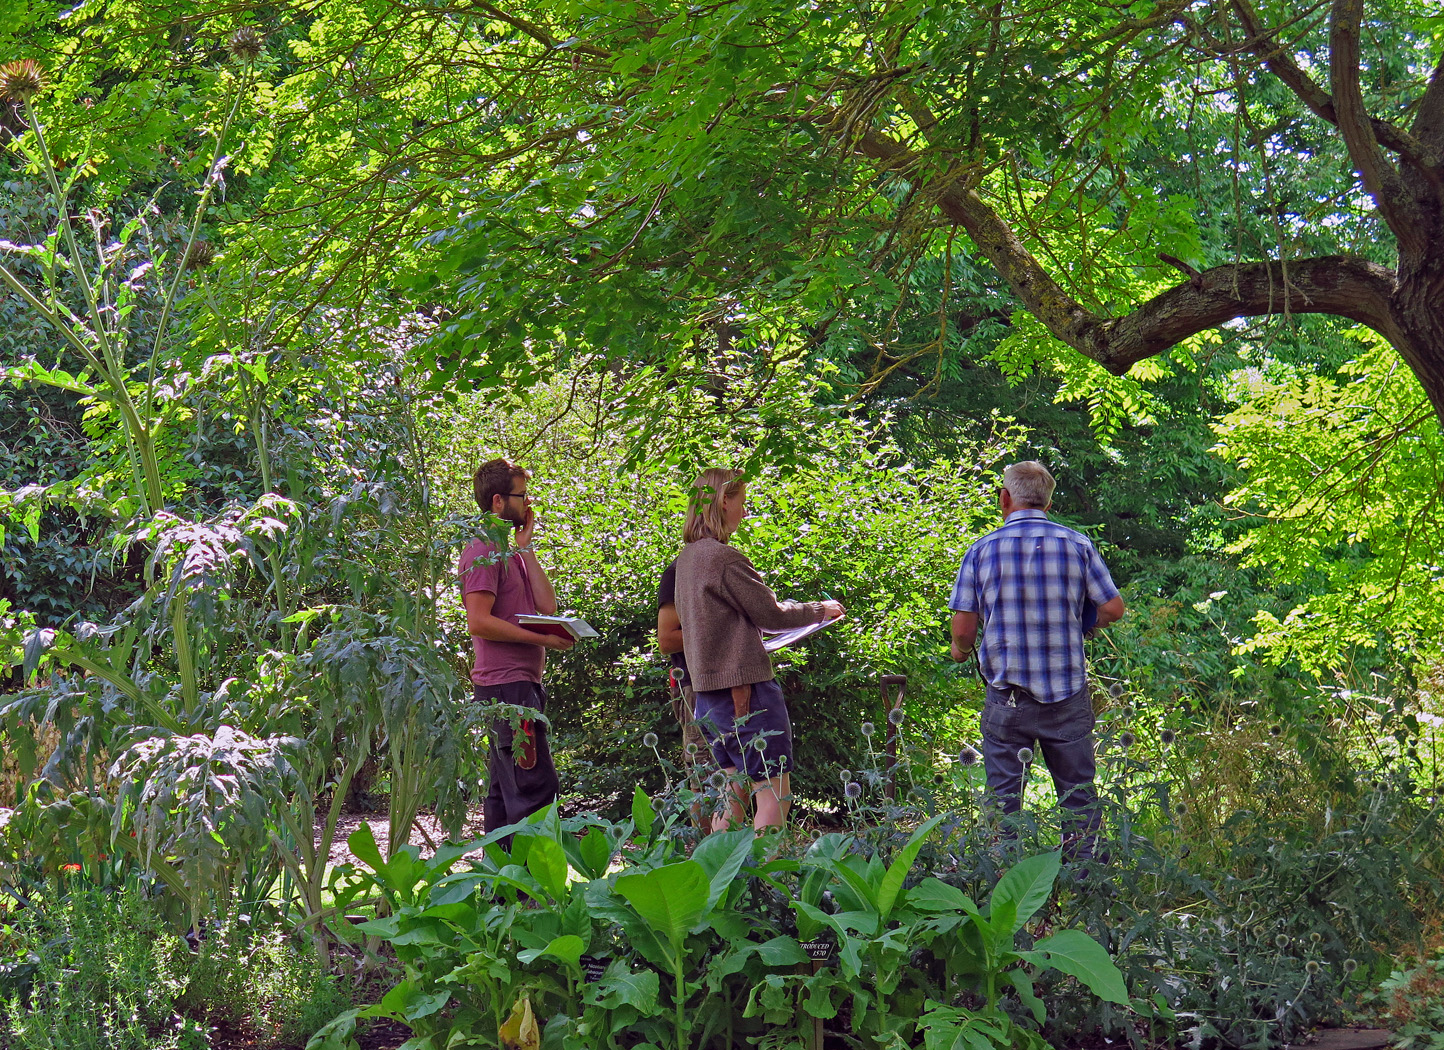 Group of Botanic Garden trainees and supervisor looking at trees.